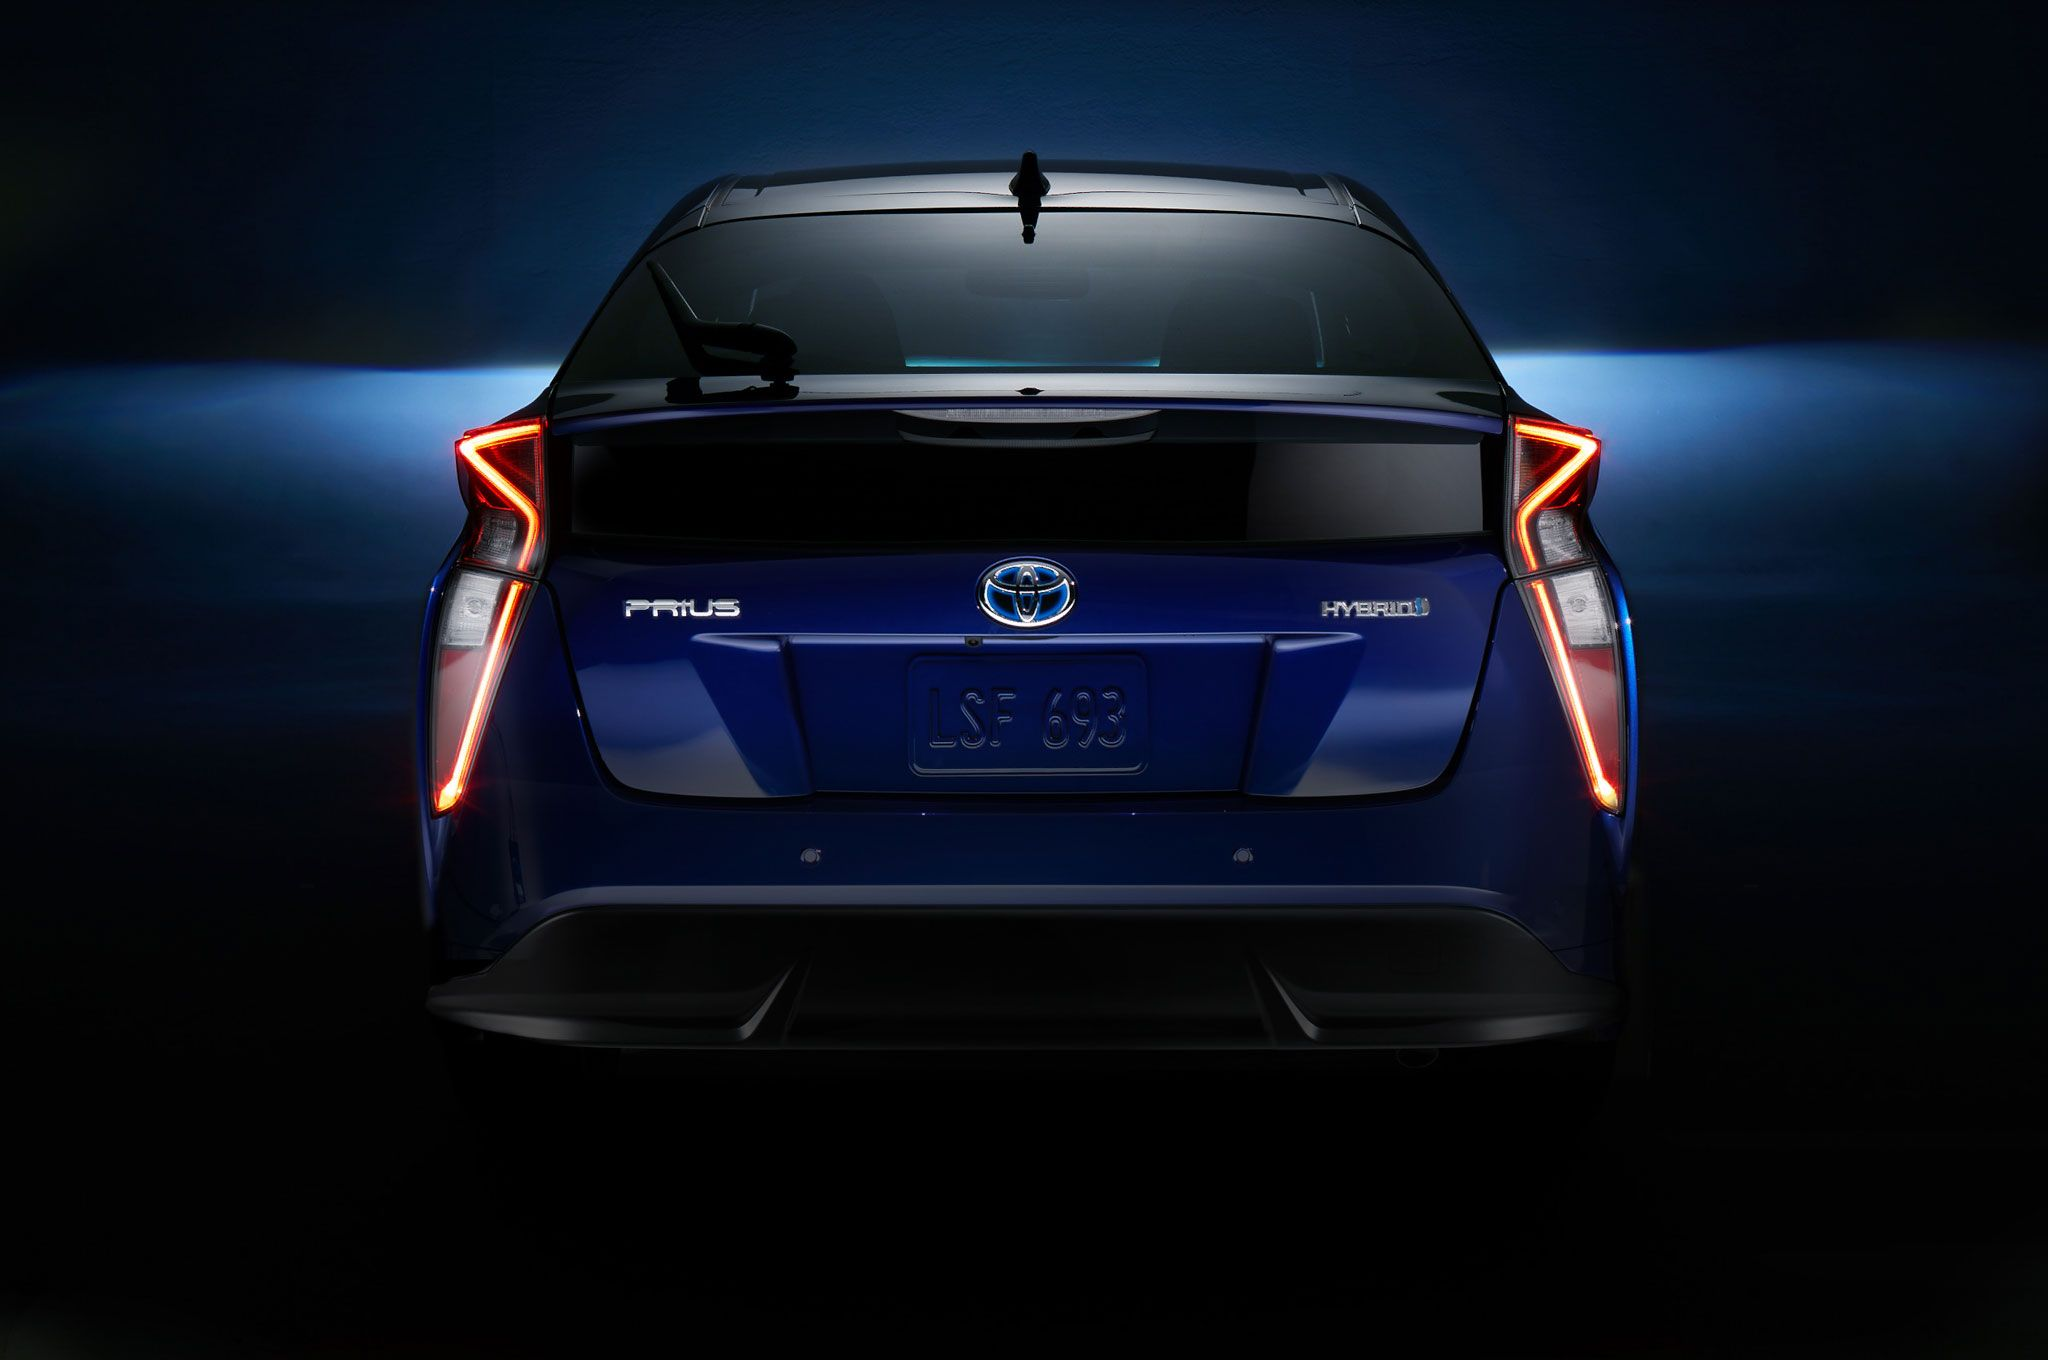 2016 Toyota Prius Rear View Taillights On Jpg 2048 1360 Toyota